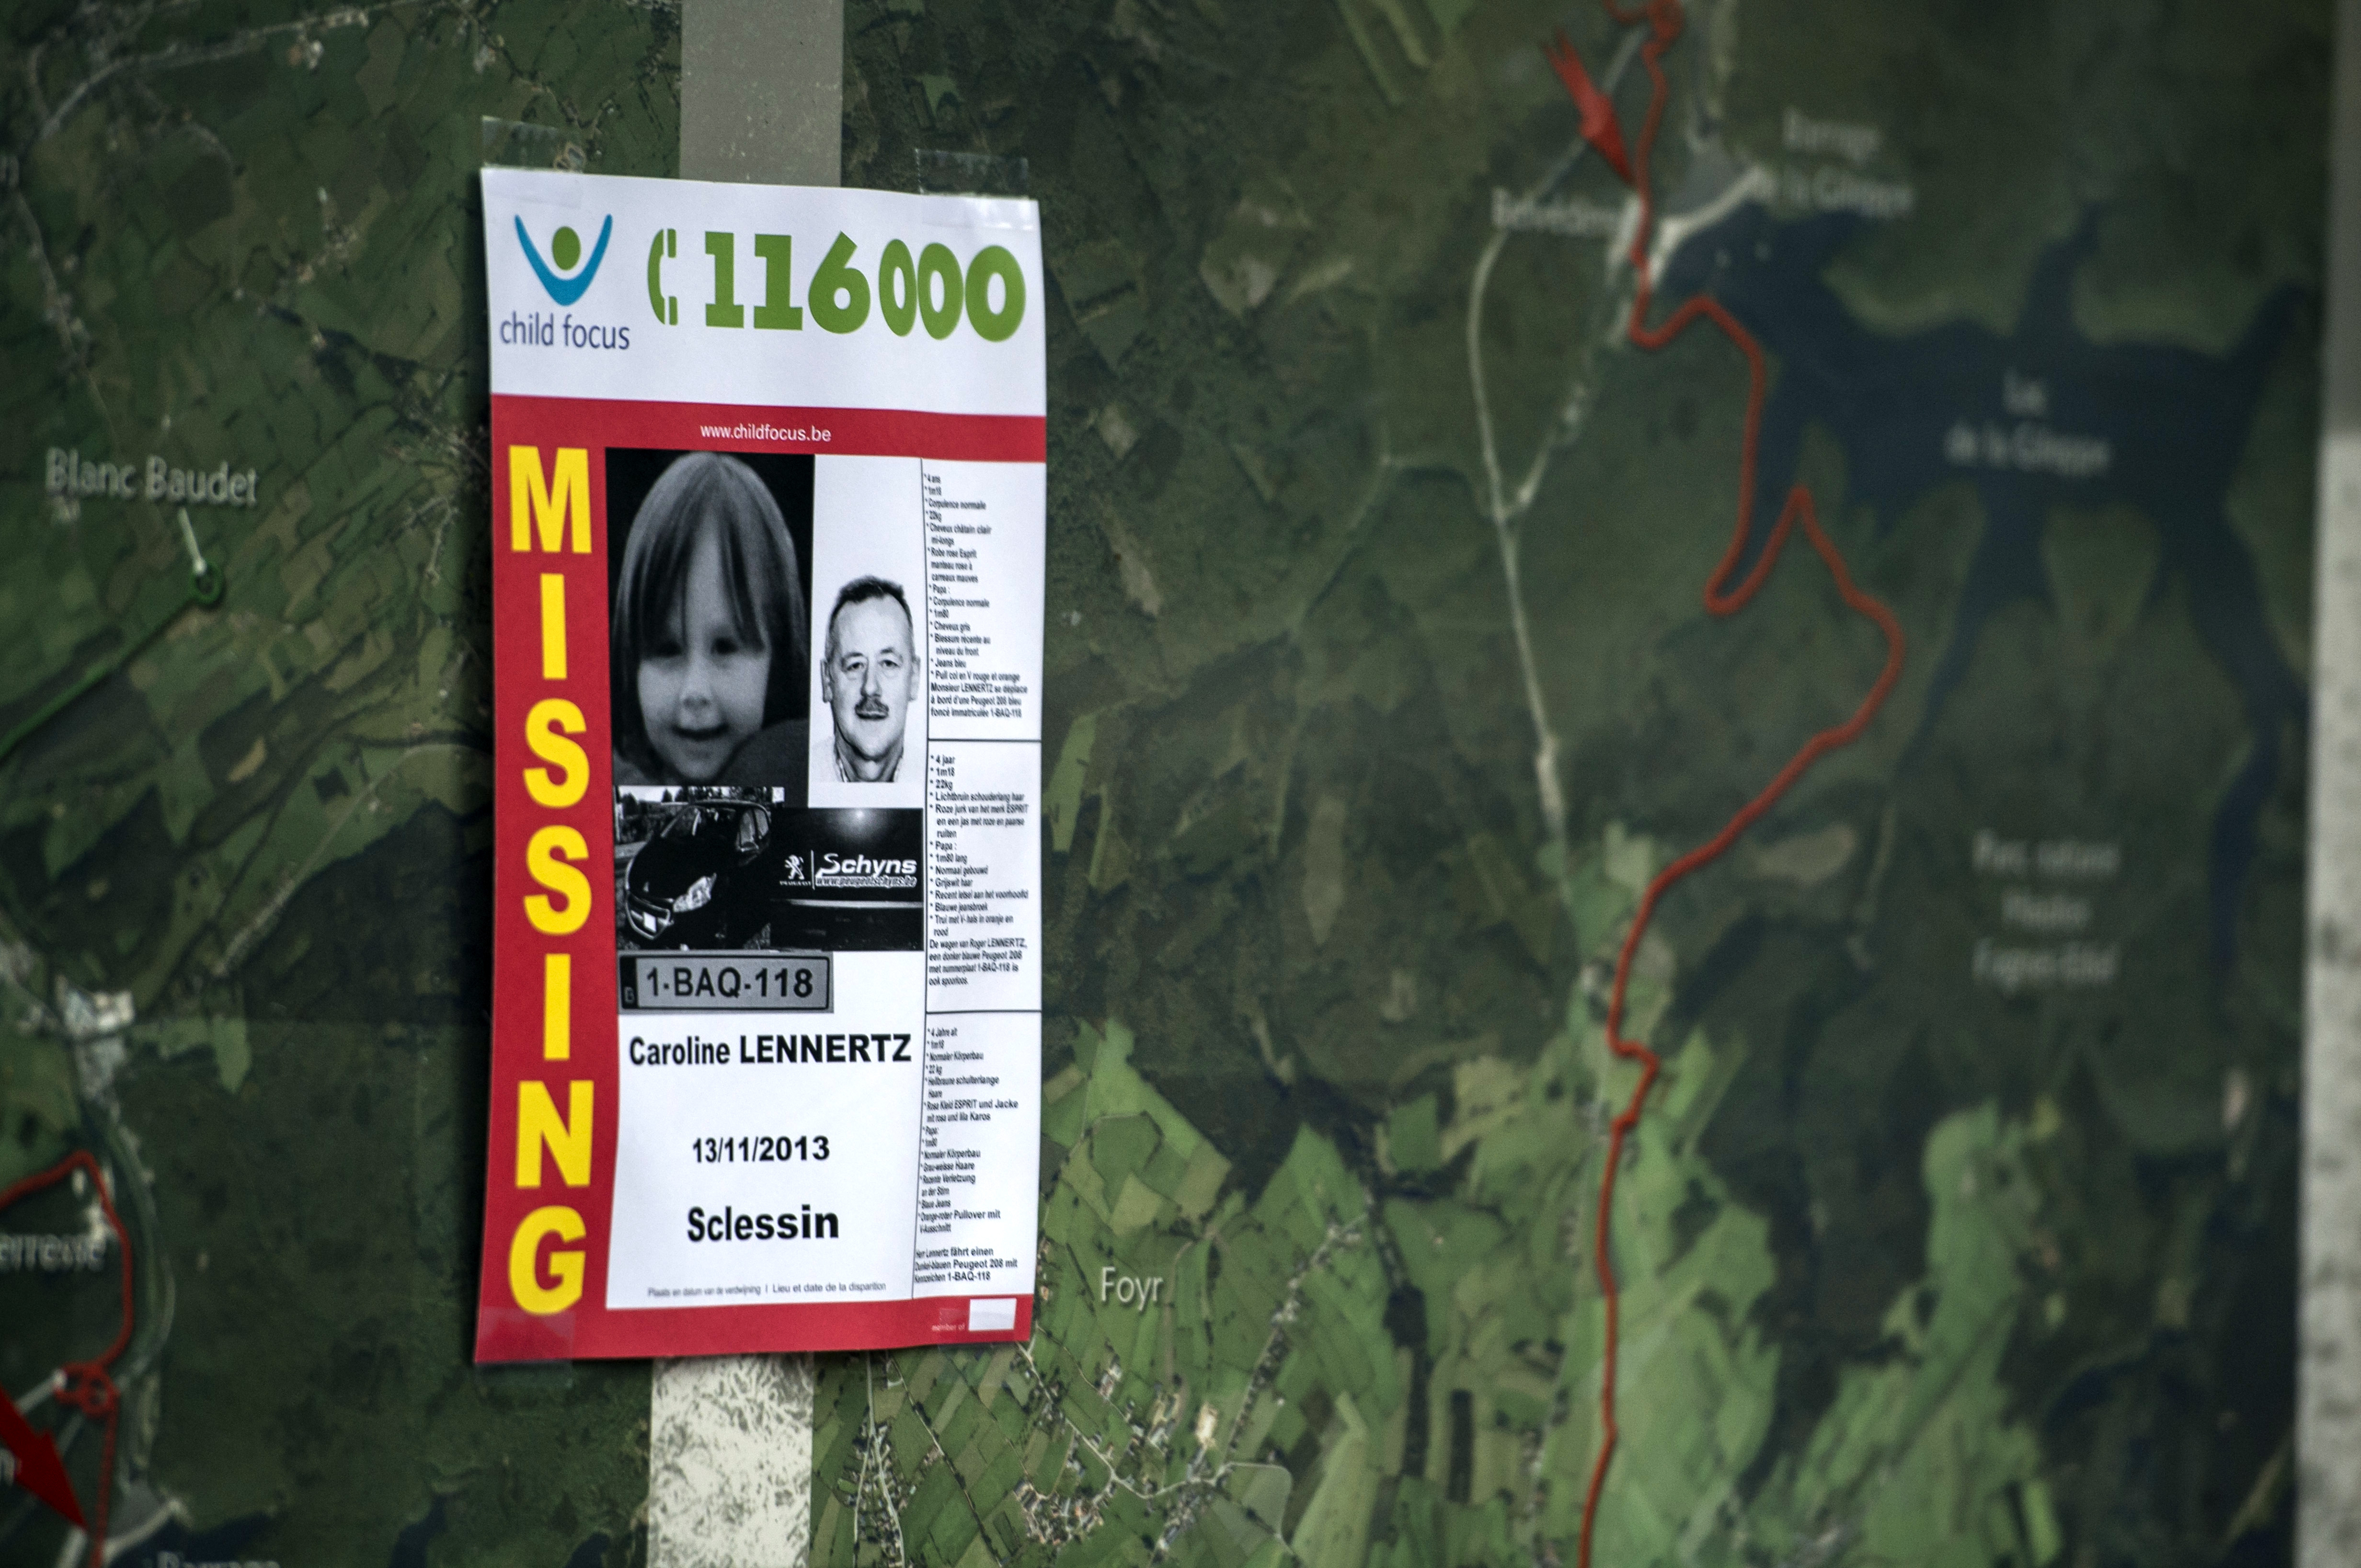 A Child Focus poster displayed during the ongoing search for a missing father and daughter in Belgium reported missing in November 2013.